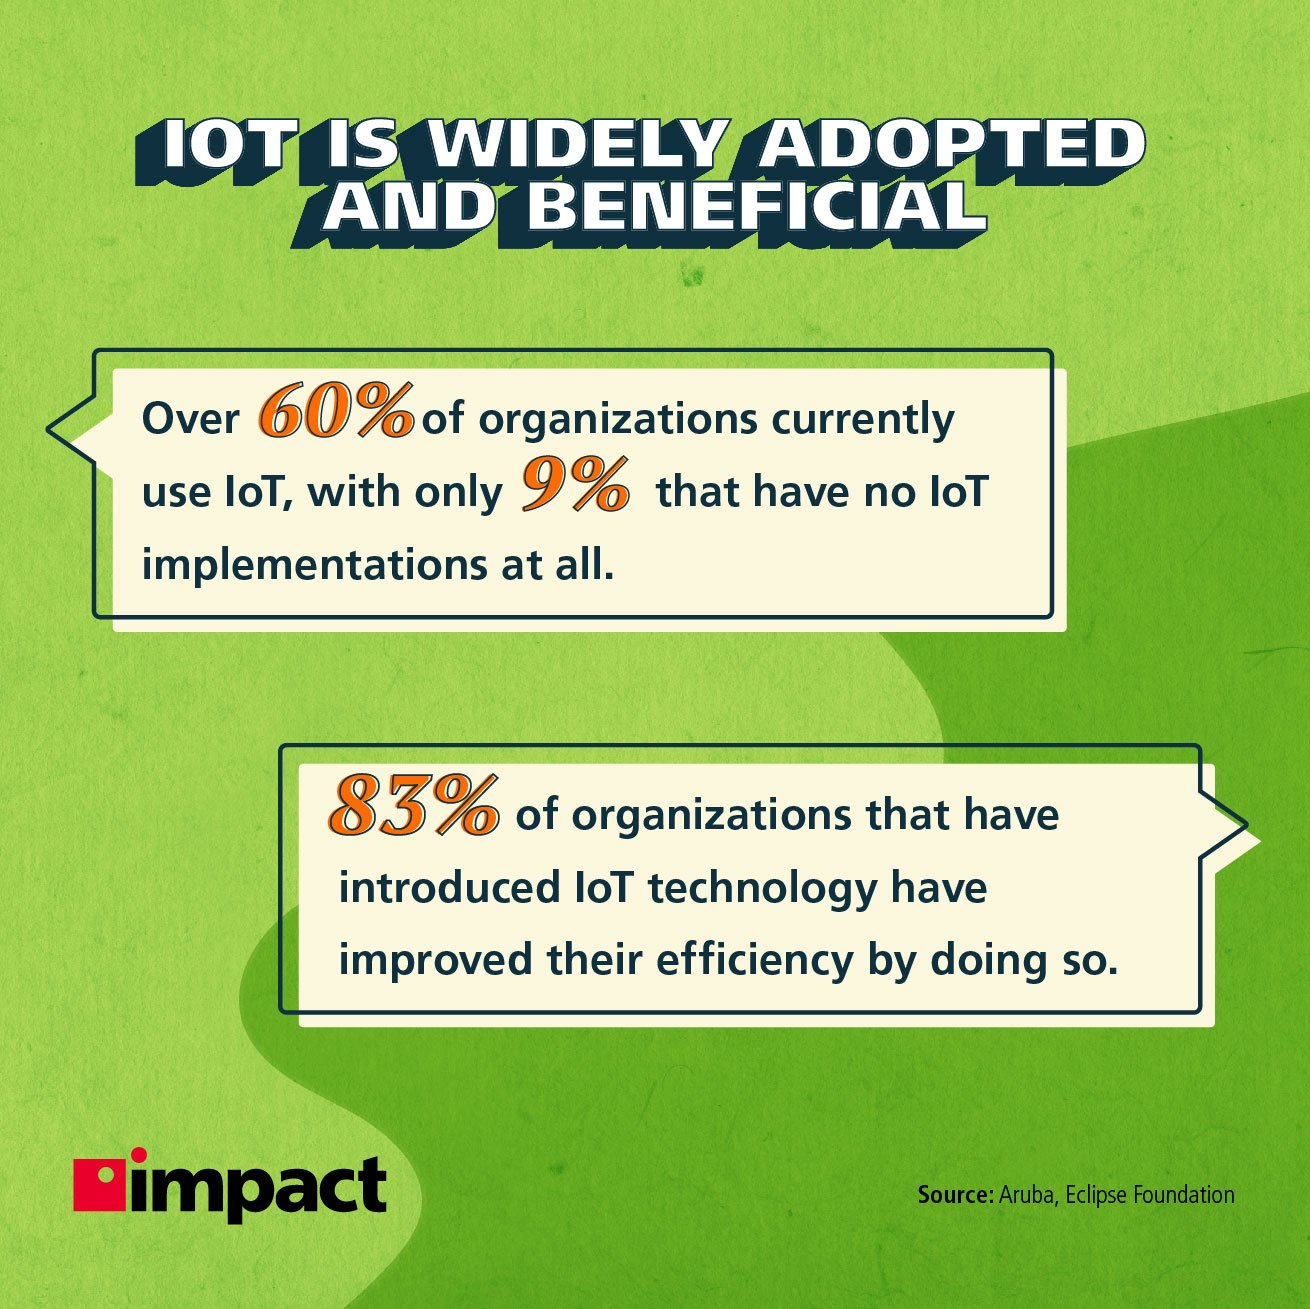 IoT is widely adopted and beneficial